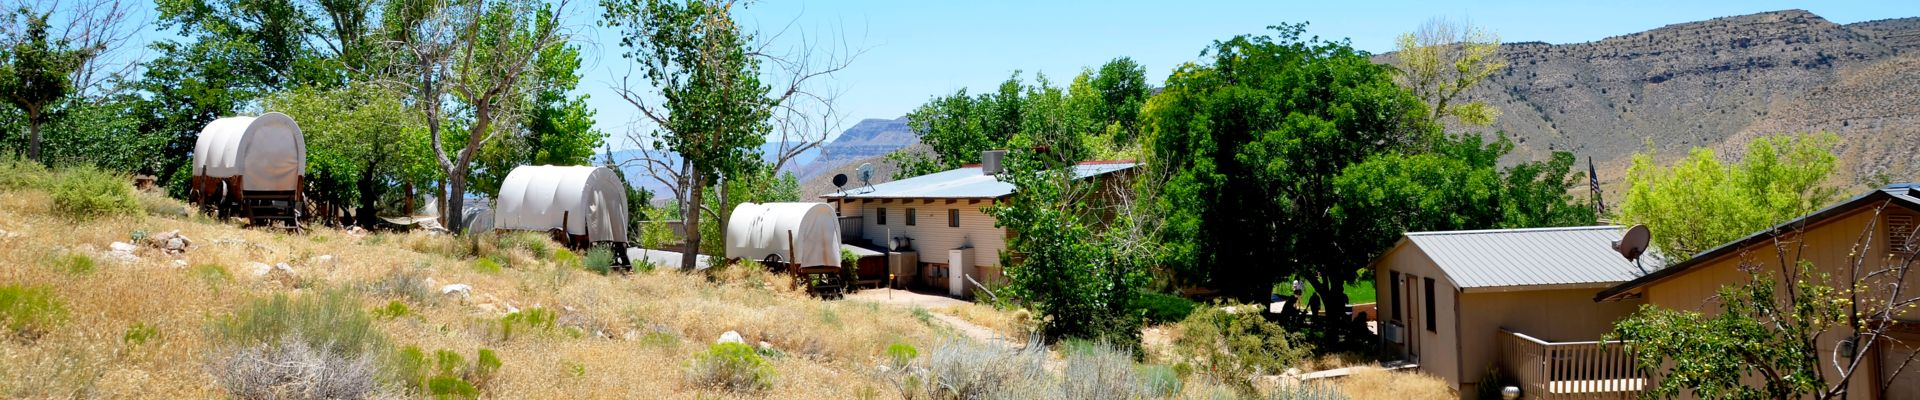 Bar 10 Ranch surrounded by desert scenery.